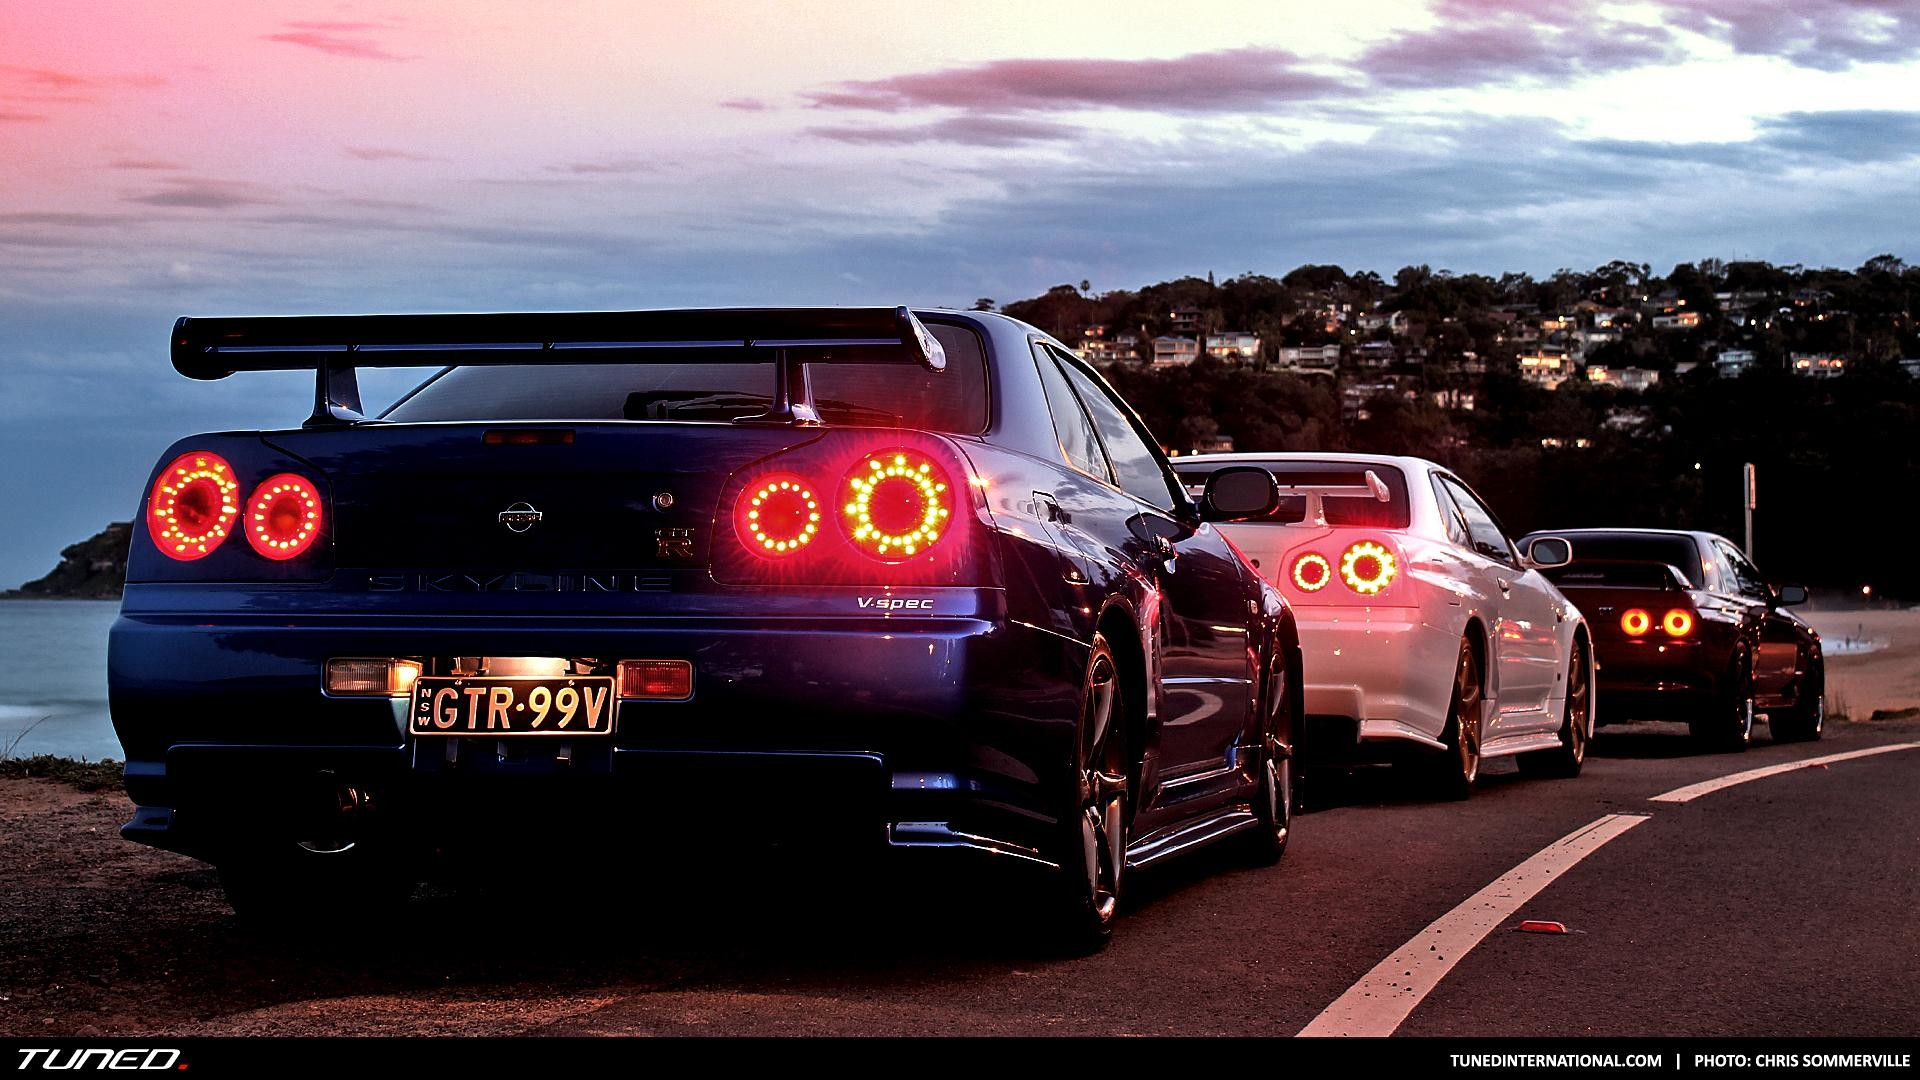 undefined Nissan Cars Wallpapers (46 Wallpapers) | Adorable Wallpapers